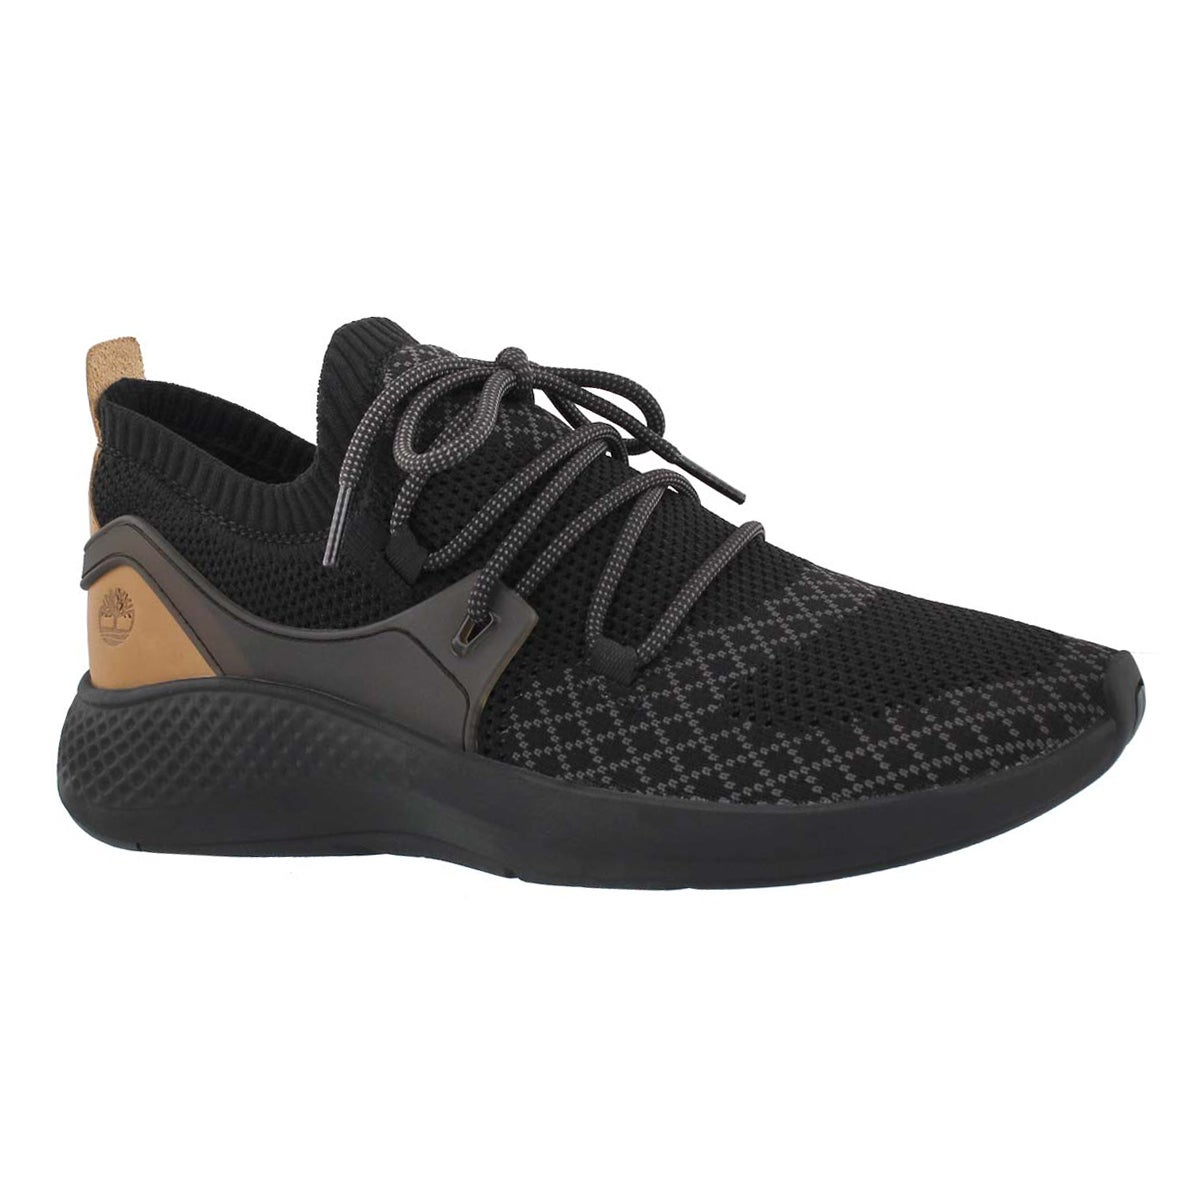 Men's FLY ROAM GO black knit sneakers